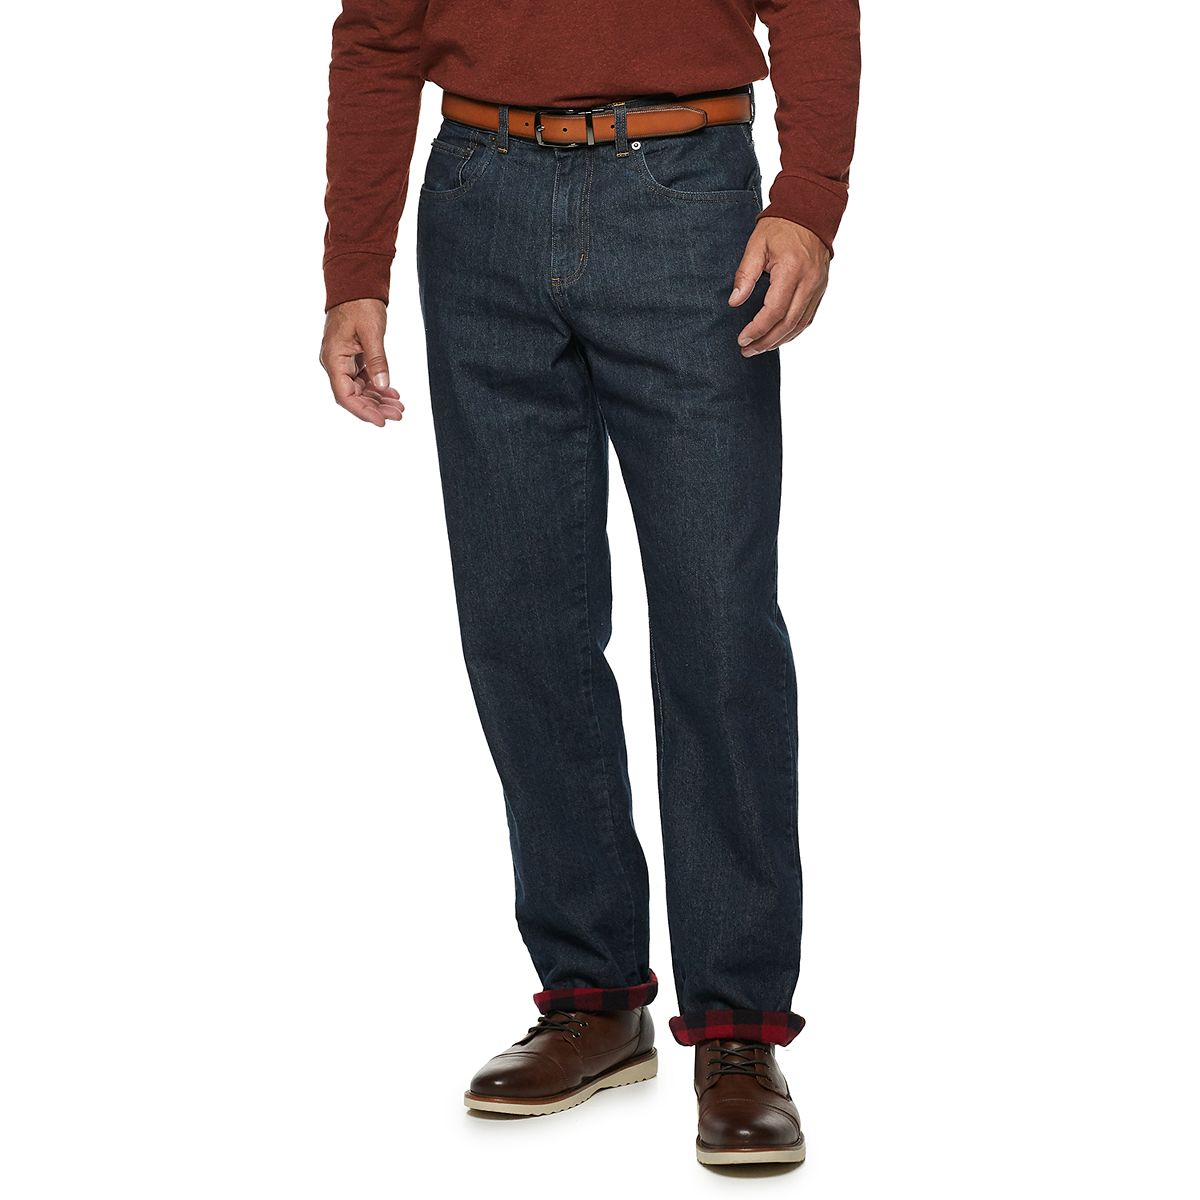 Croft & Barrow Mens Straight-Fit Flannel-Lined Jeans